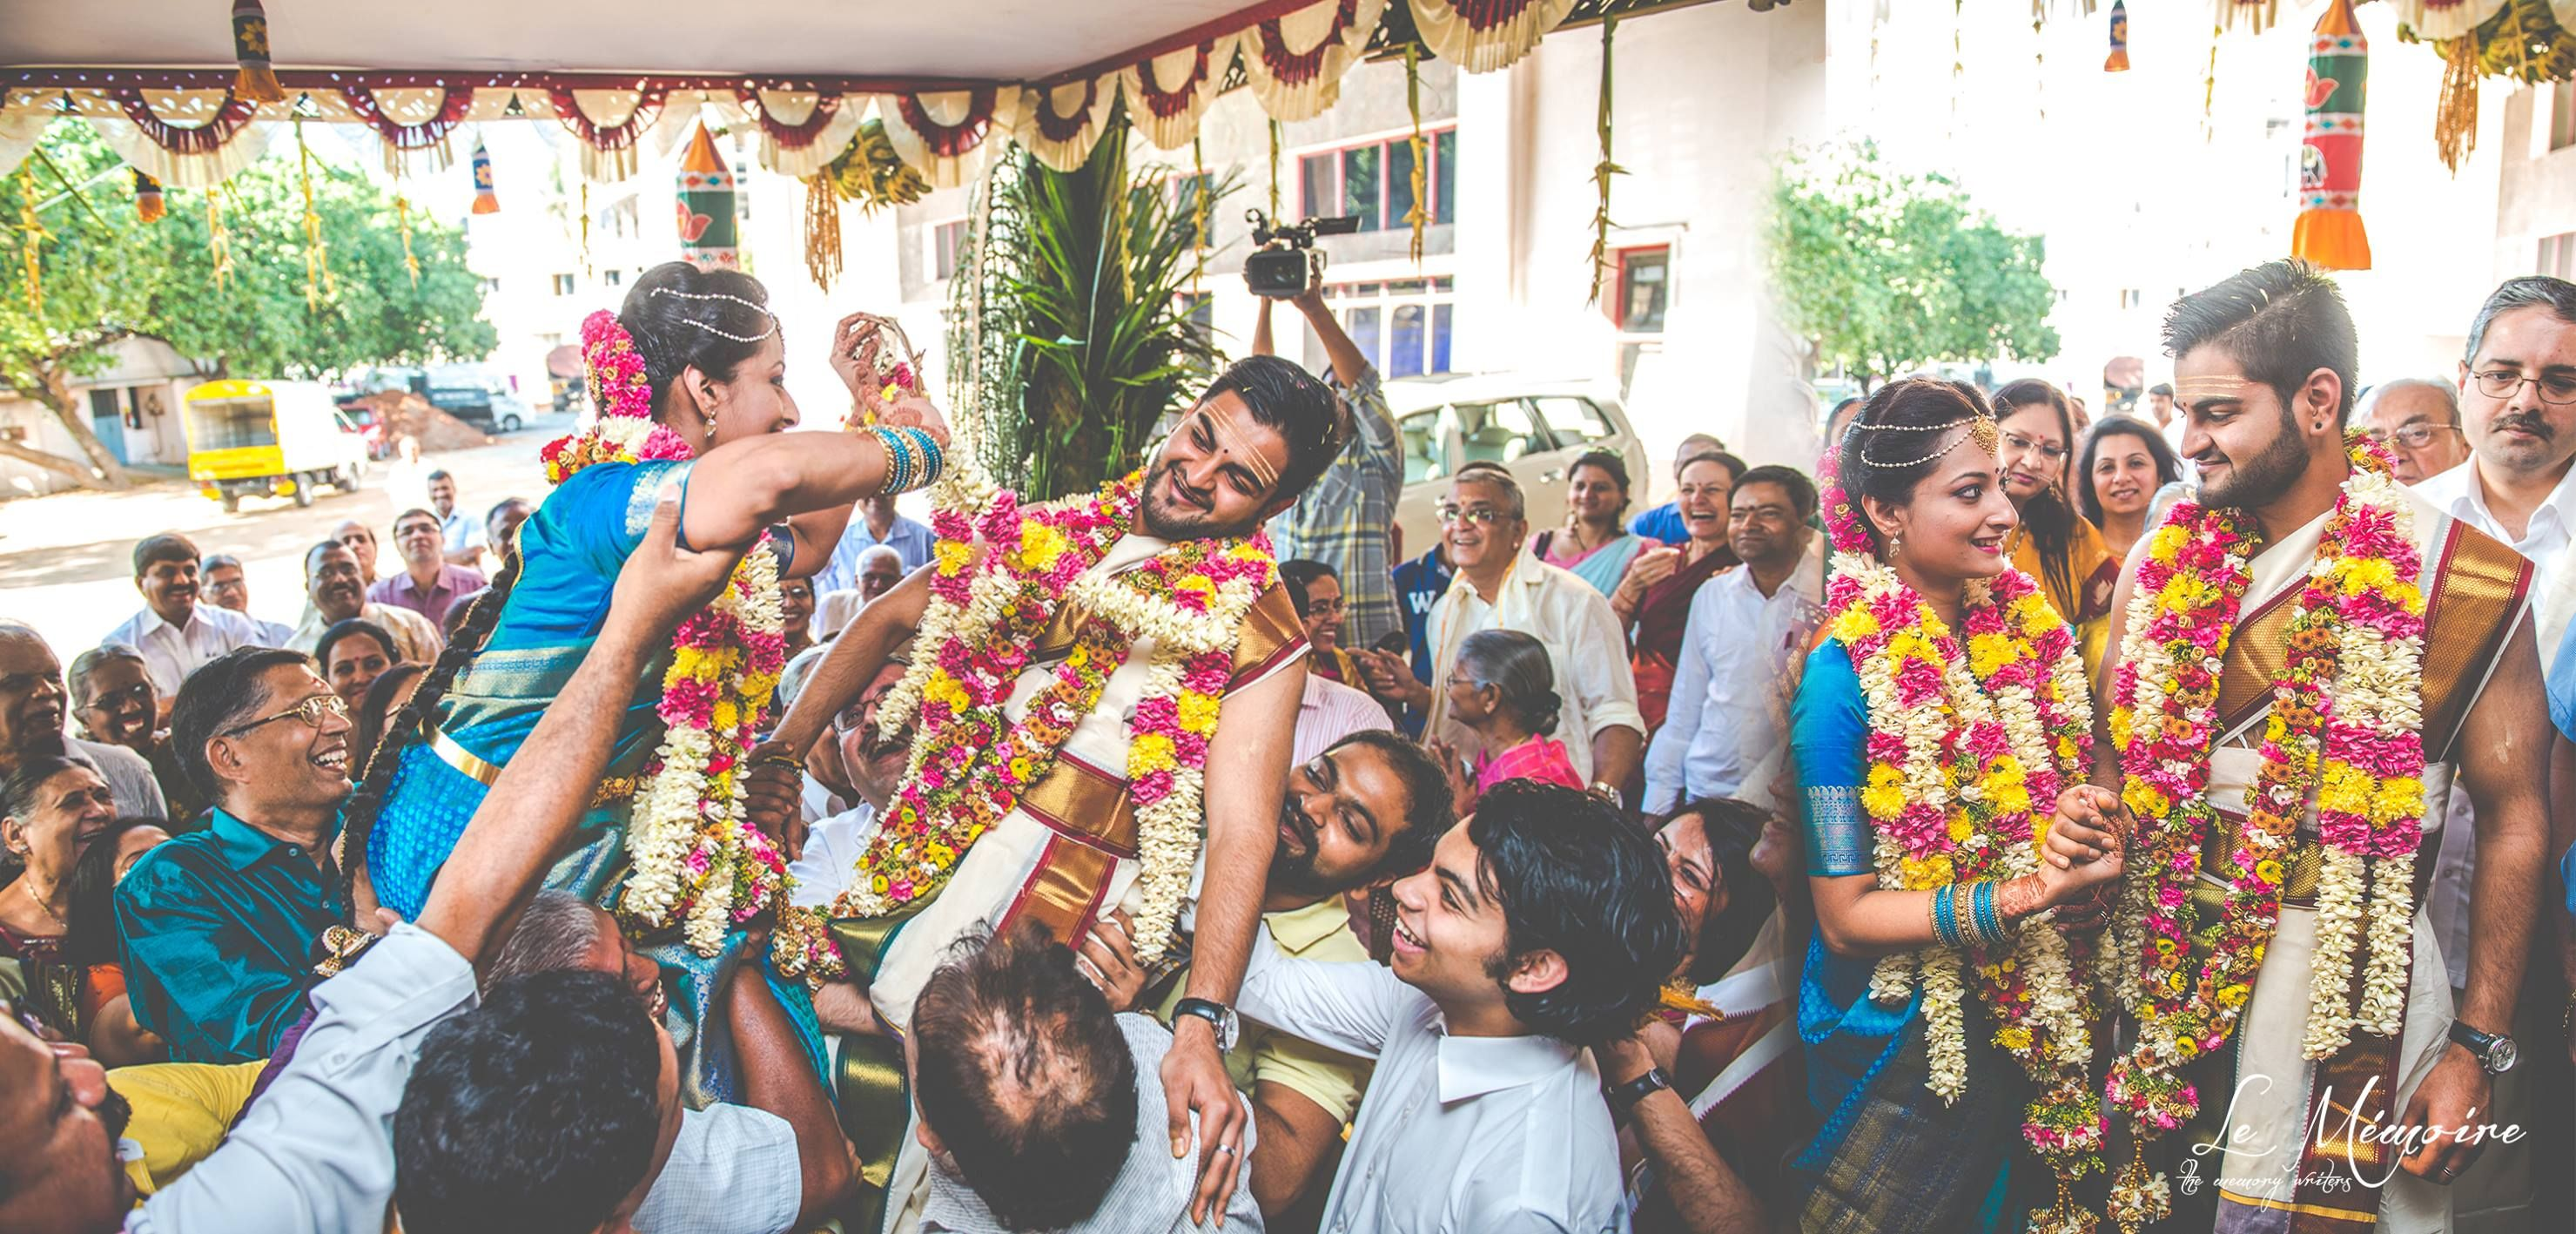 Exchange of Garlands The Battle Of Love & Laughter